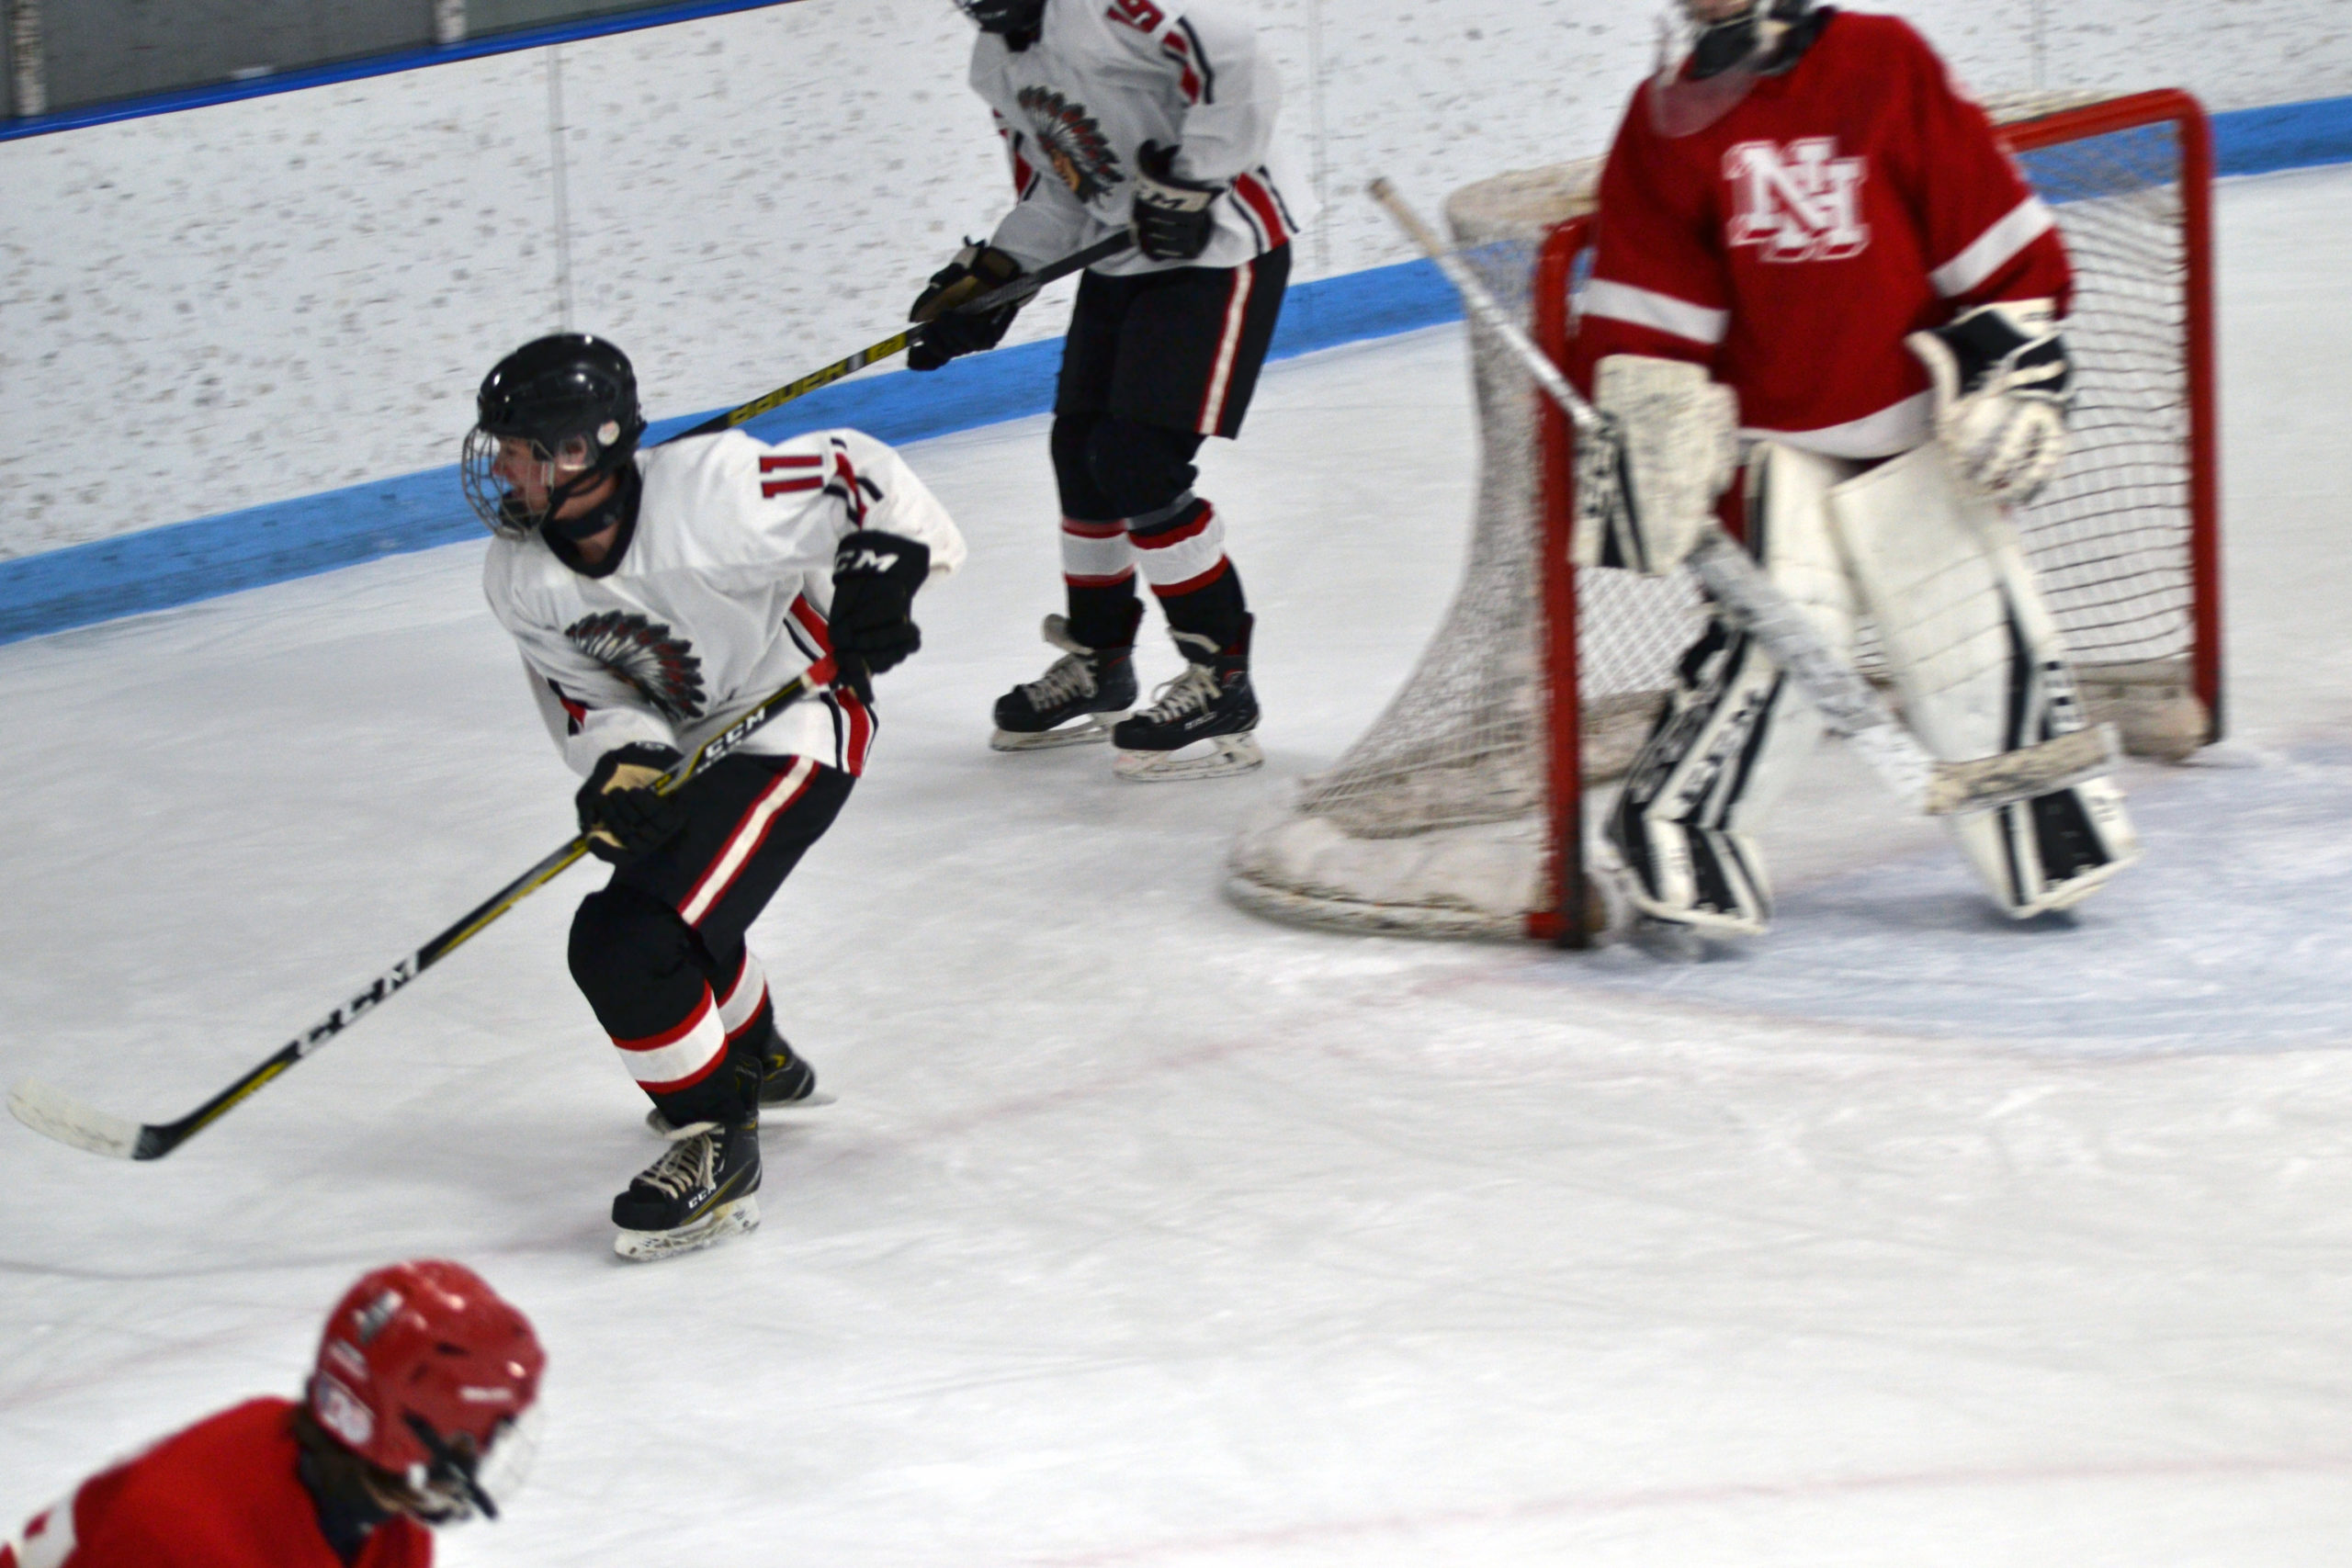 IHS hockey team finishes the season strong